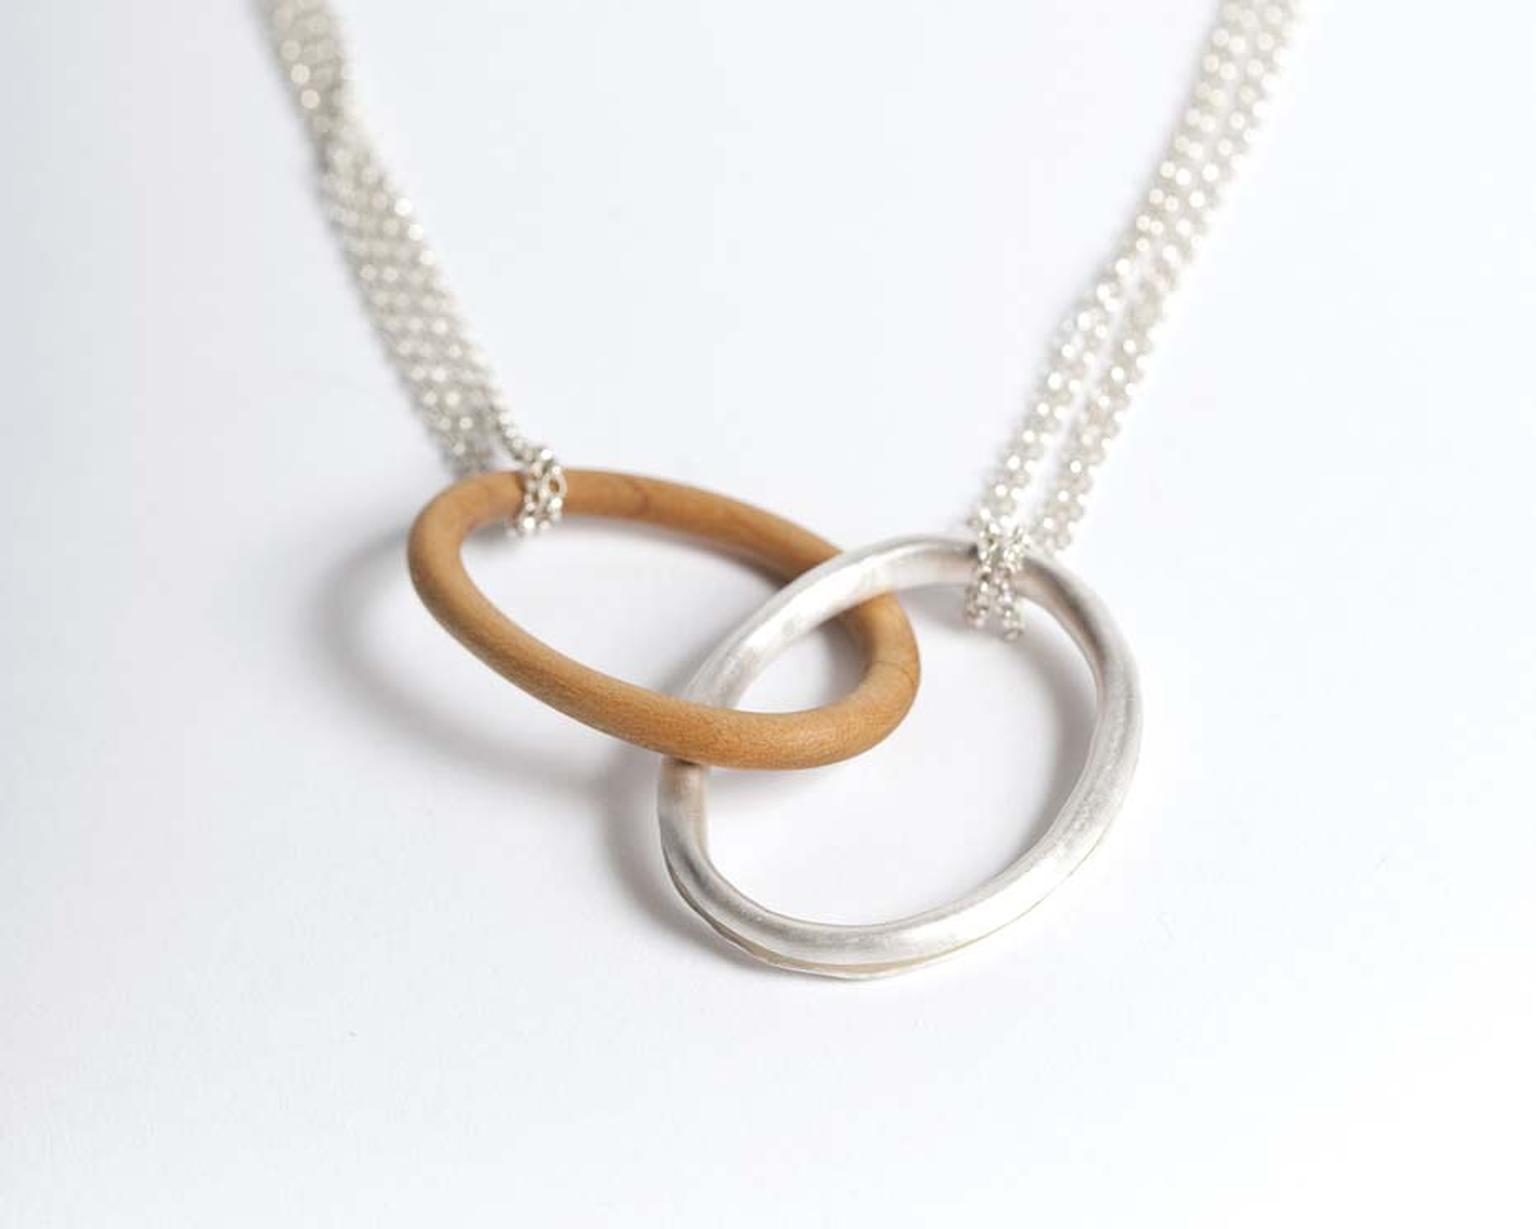 Grace Girvan silver and wood Connect necklace (£280)